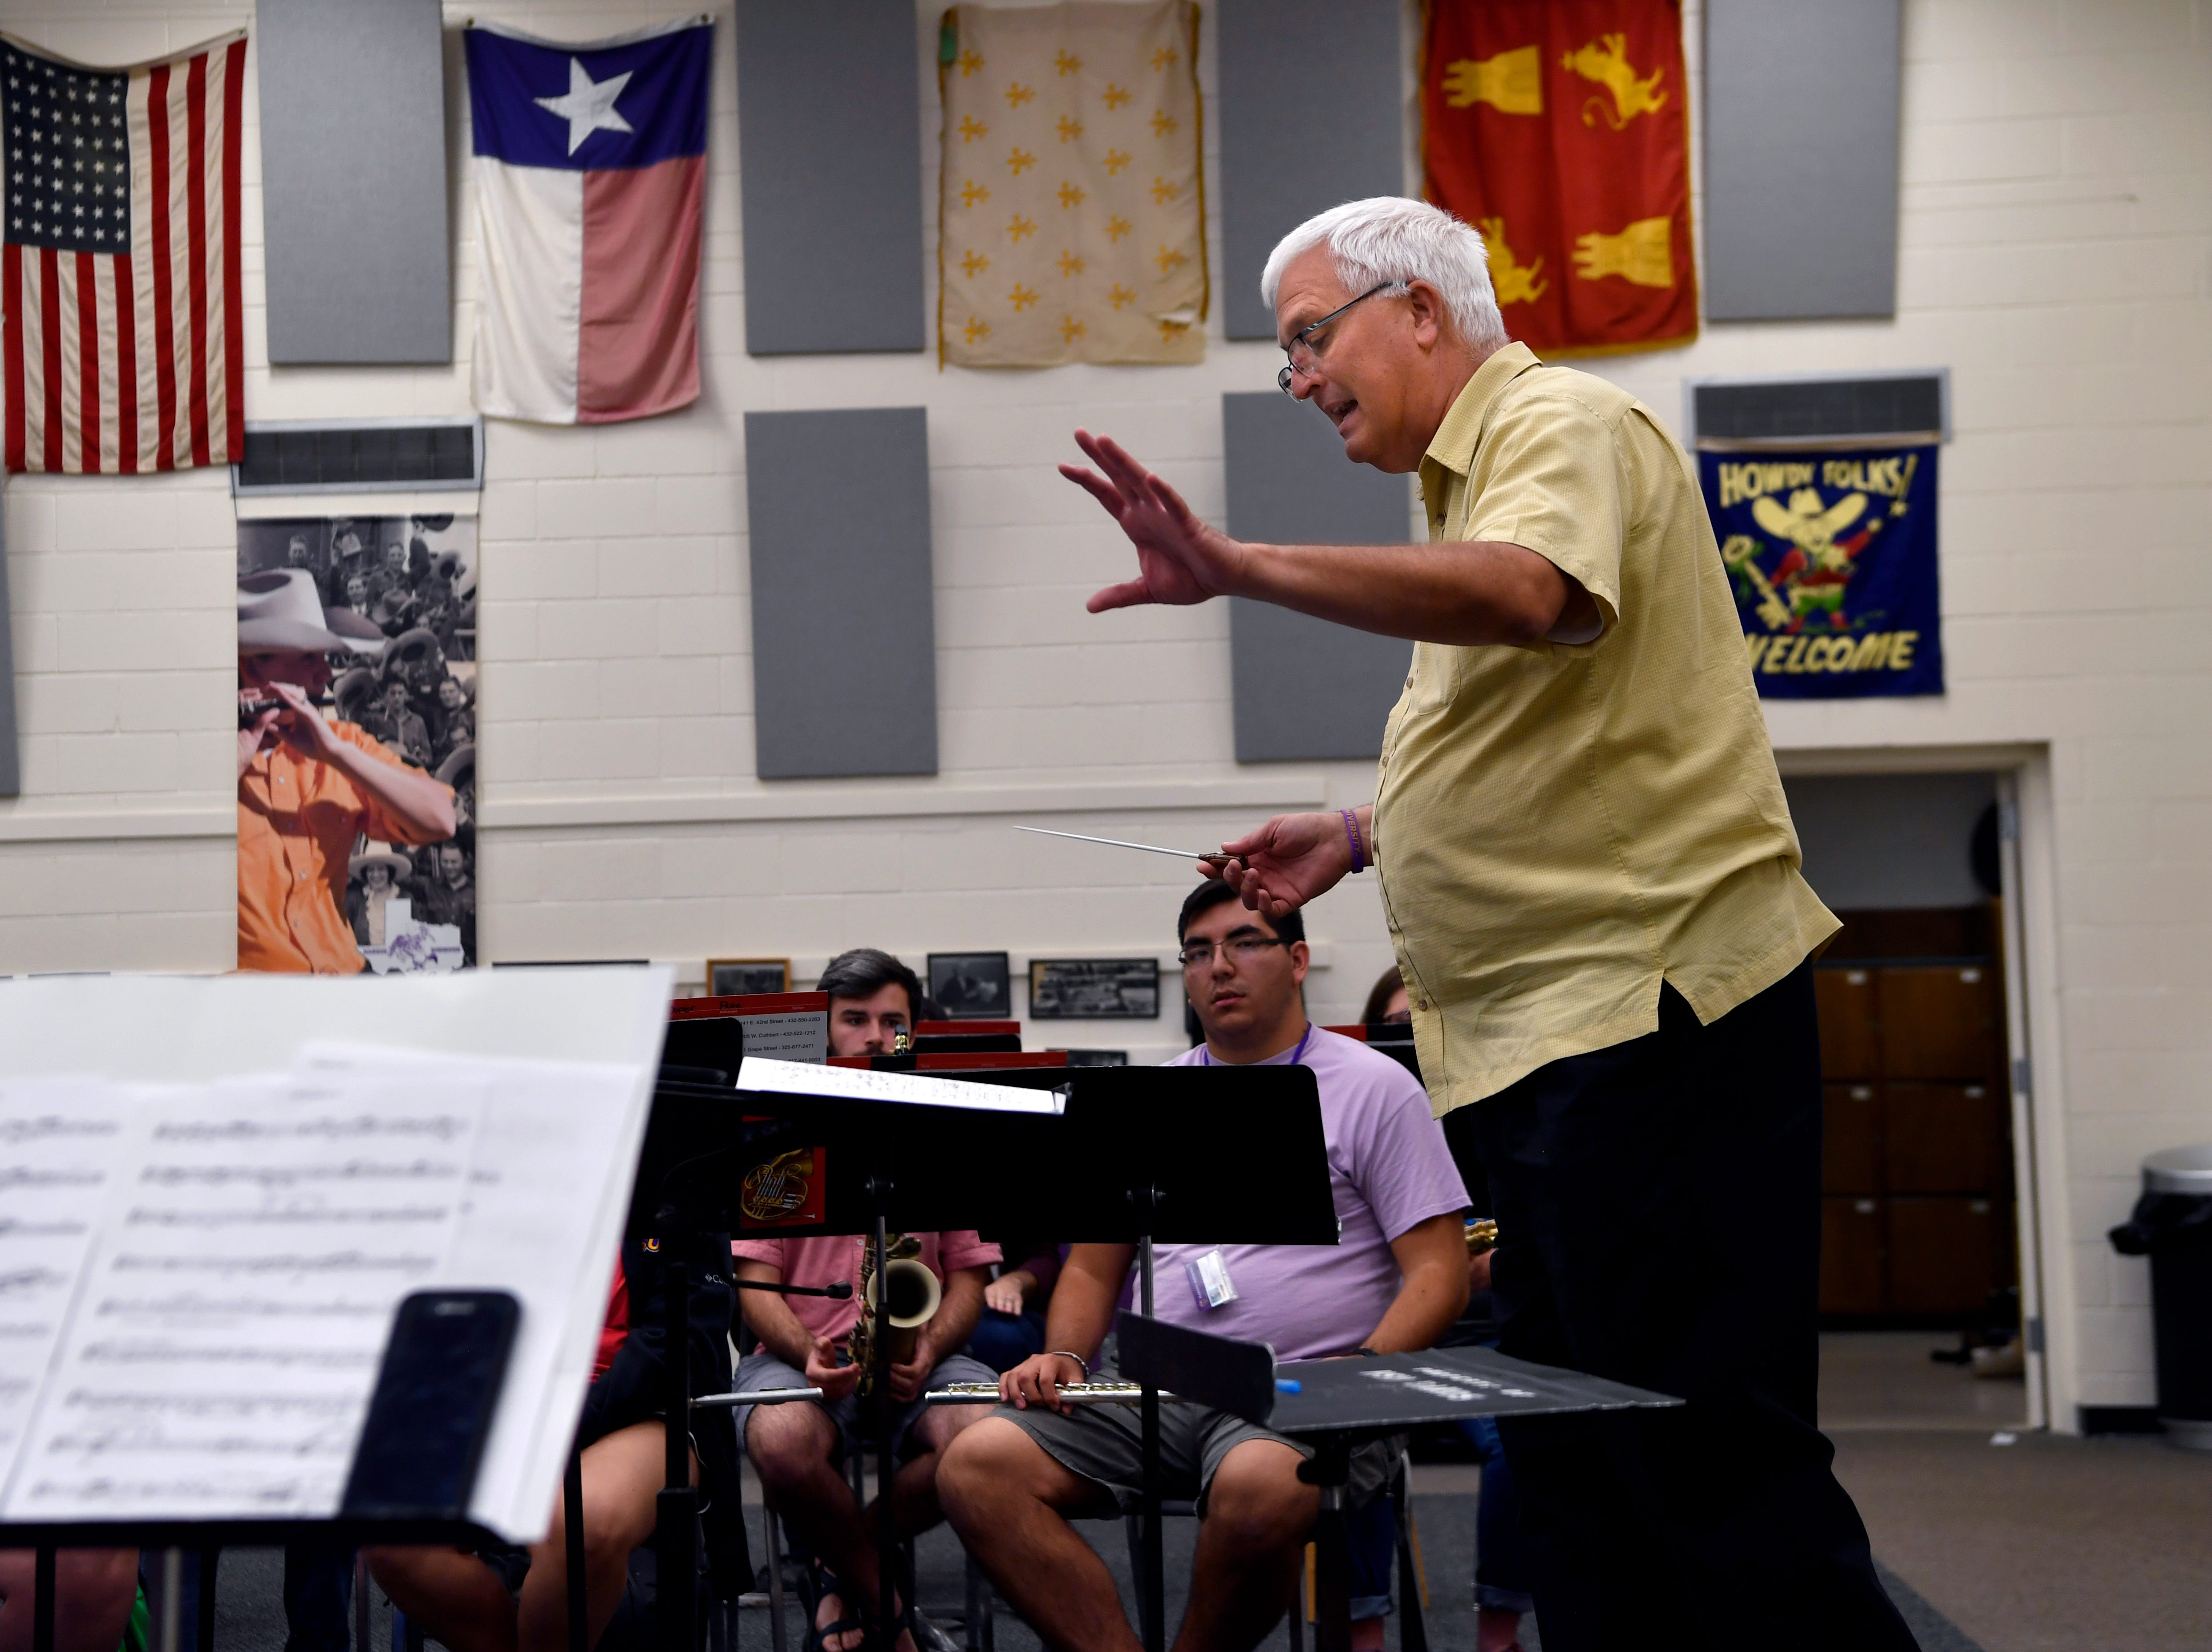 Billy Harden, assistant professor of music and director of bands, leads a concert band rehearsal Sept. 5 at Hardin-Simmons University. Harden succeeded Wayne Dorothy, who was reassigned by the university in May.